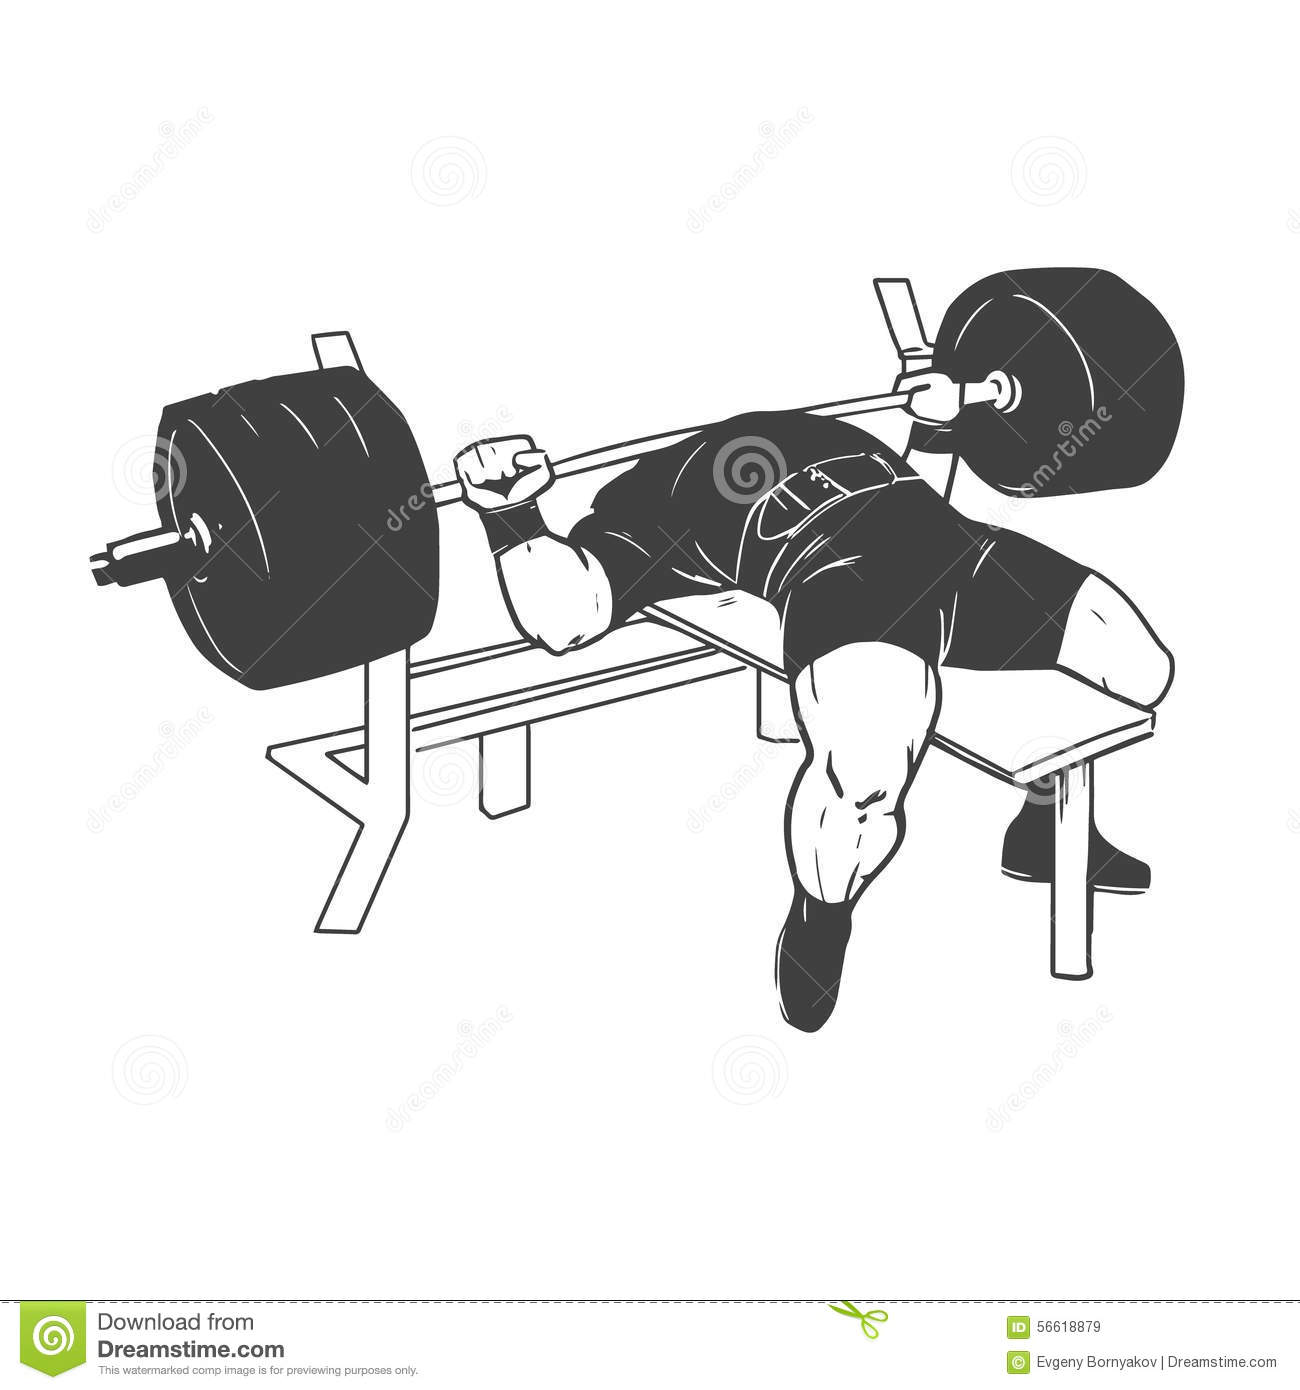 Powerlifting bench press stock vector  Illustration of icon